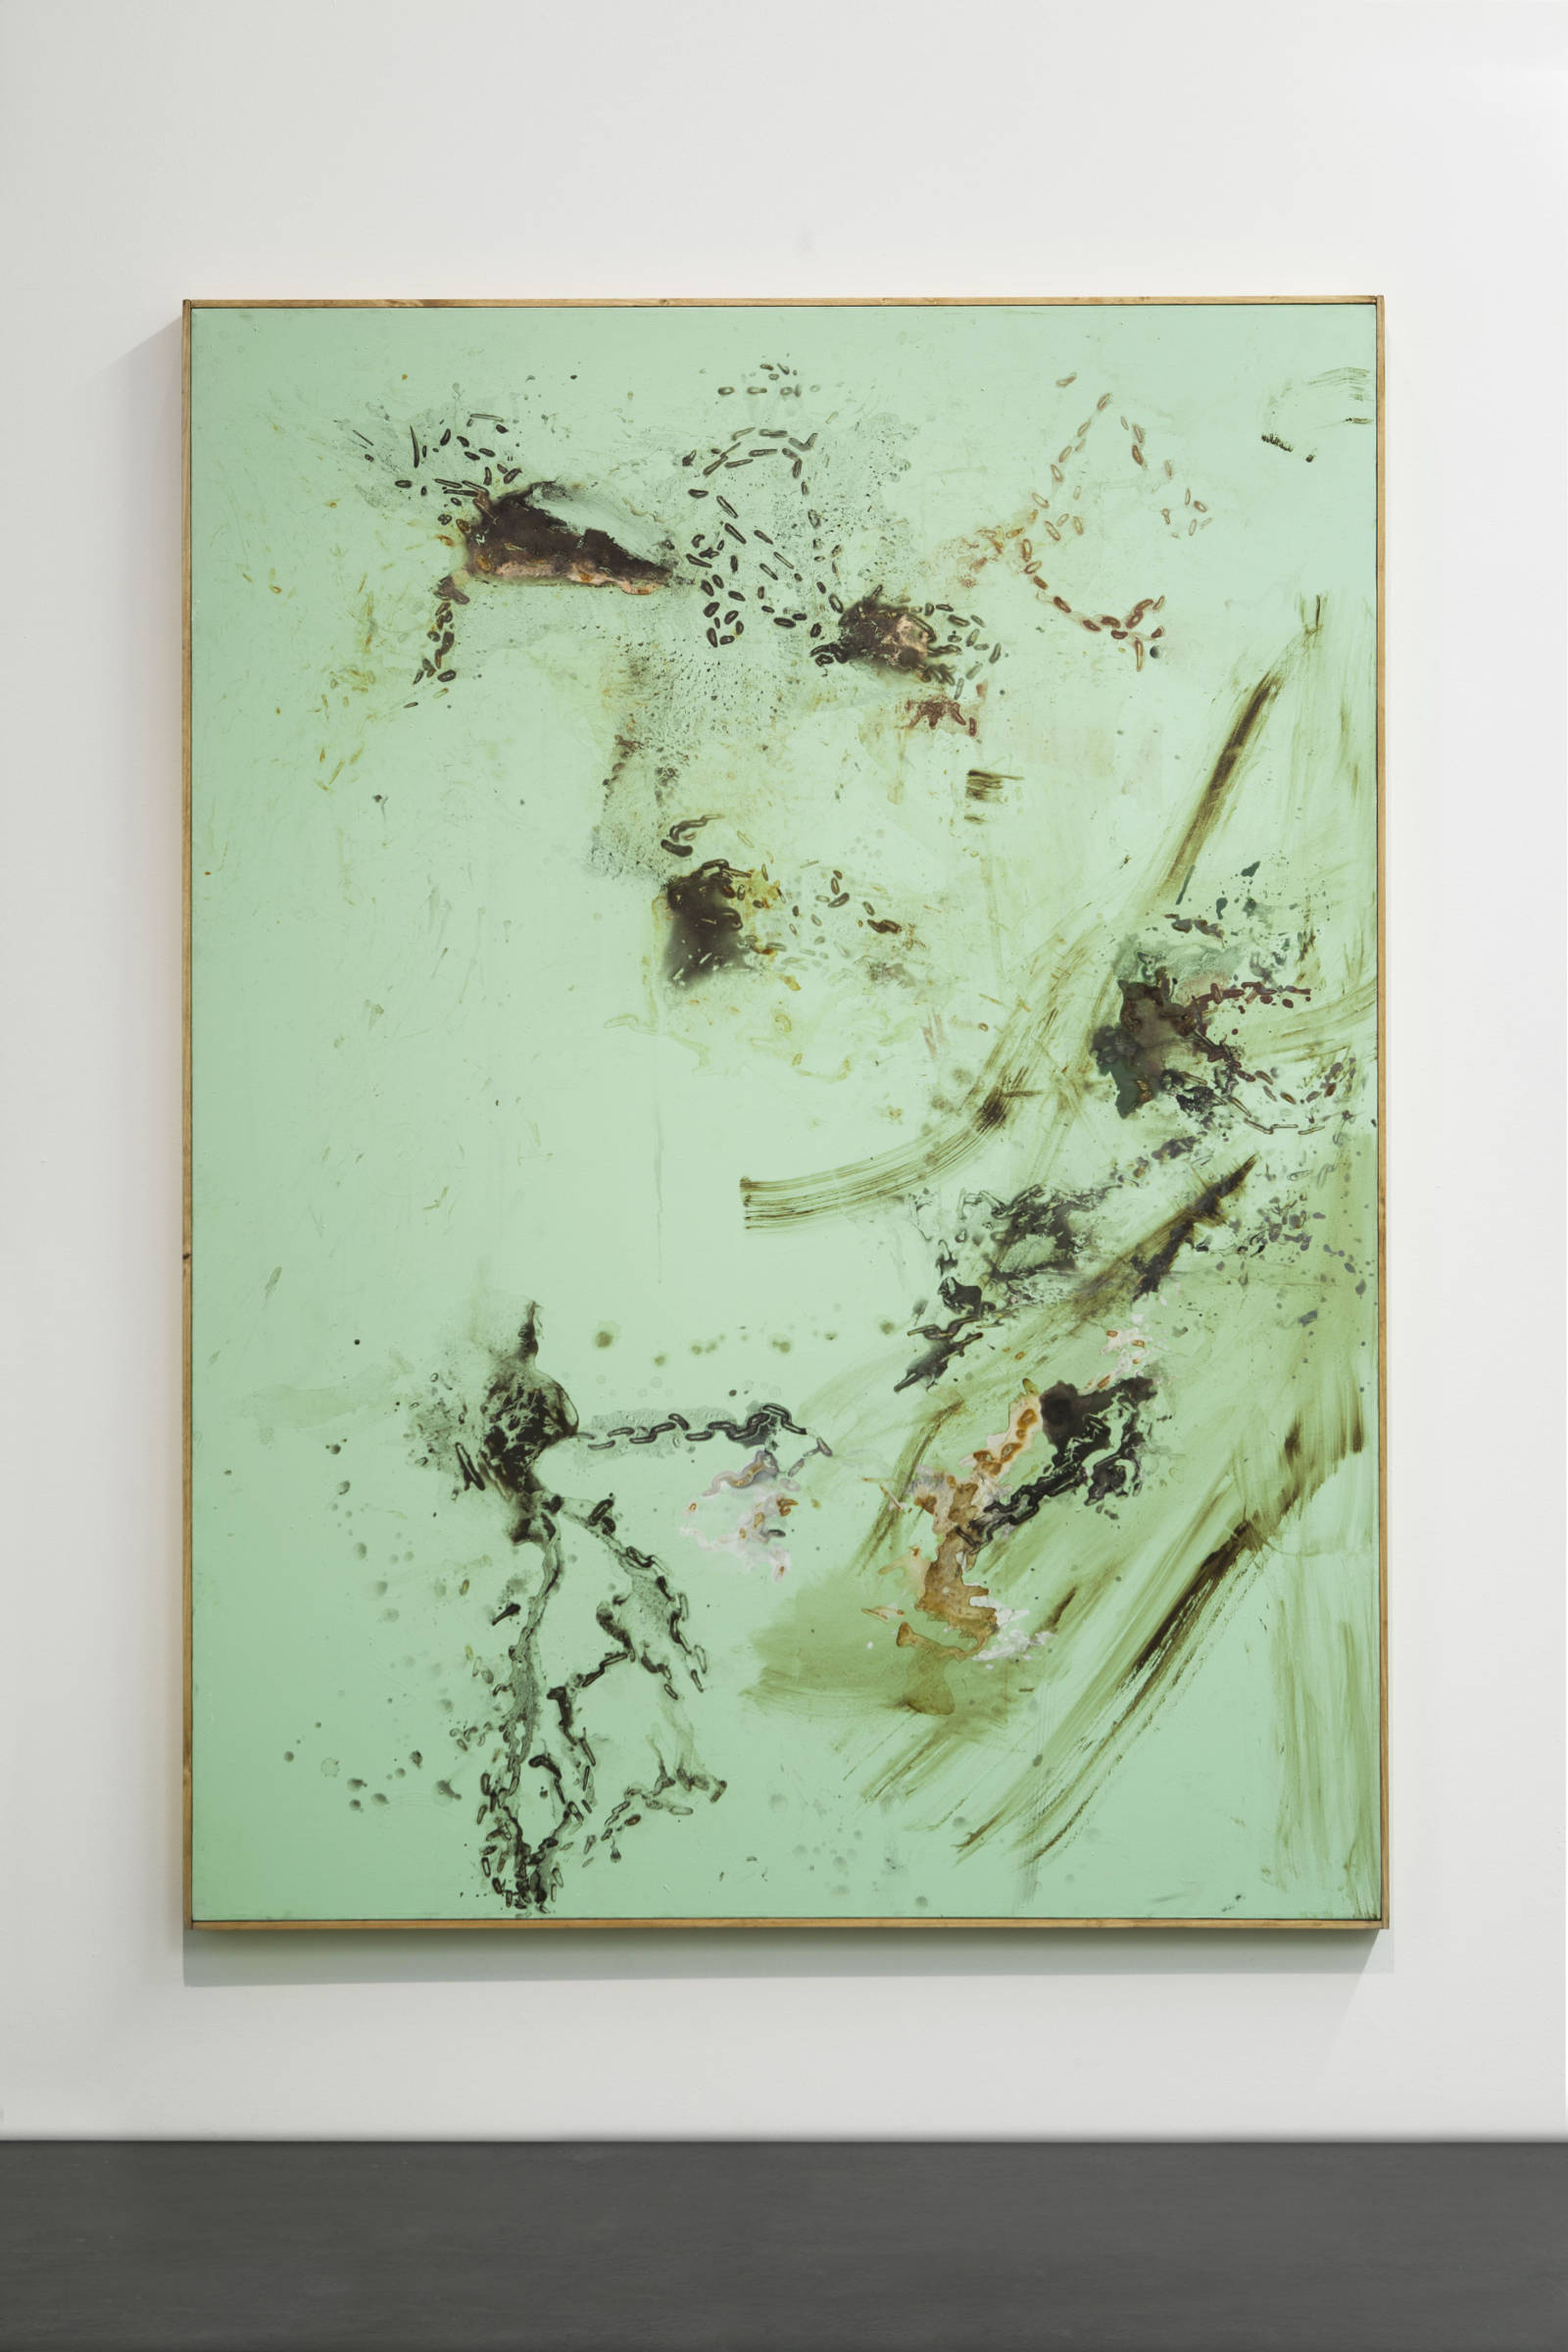 3_Tiziano Martini, Untitled, 2014, acrylic and oil paint, acrylic enamel, rust, dirt and sediments on cotton, wooden frame, cm 192x152, Courtesy OTTO ZOO, foto Andrea Rossetti